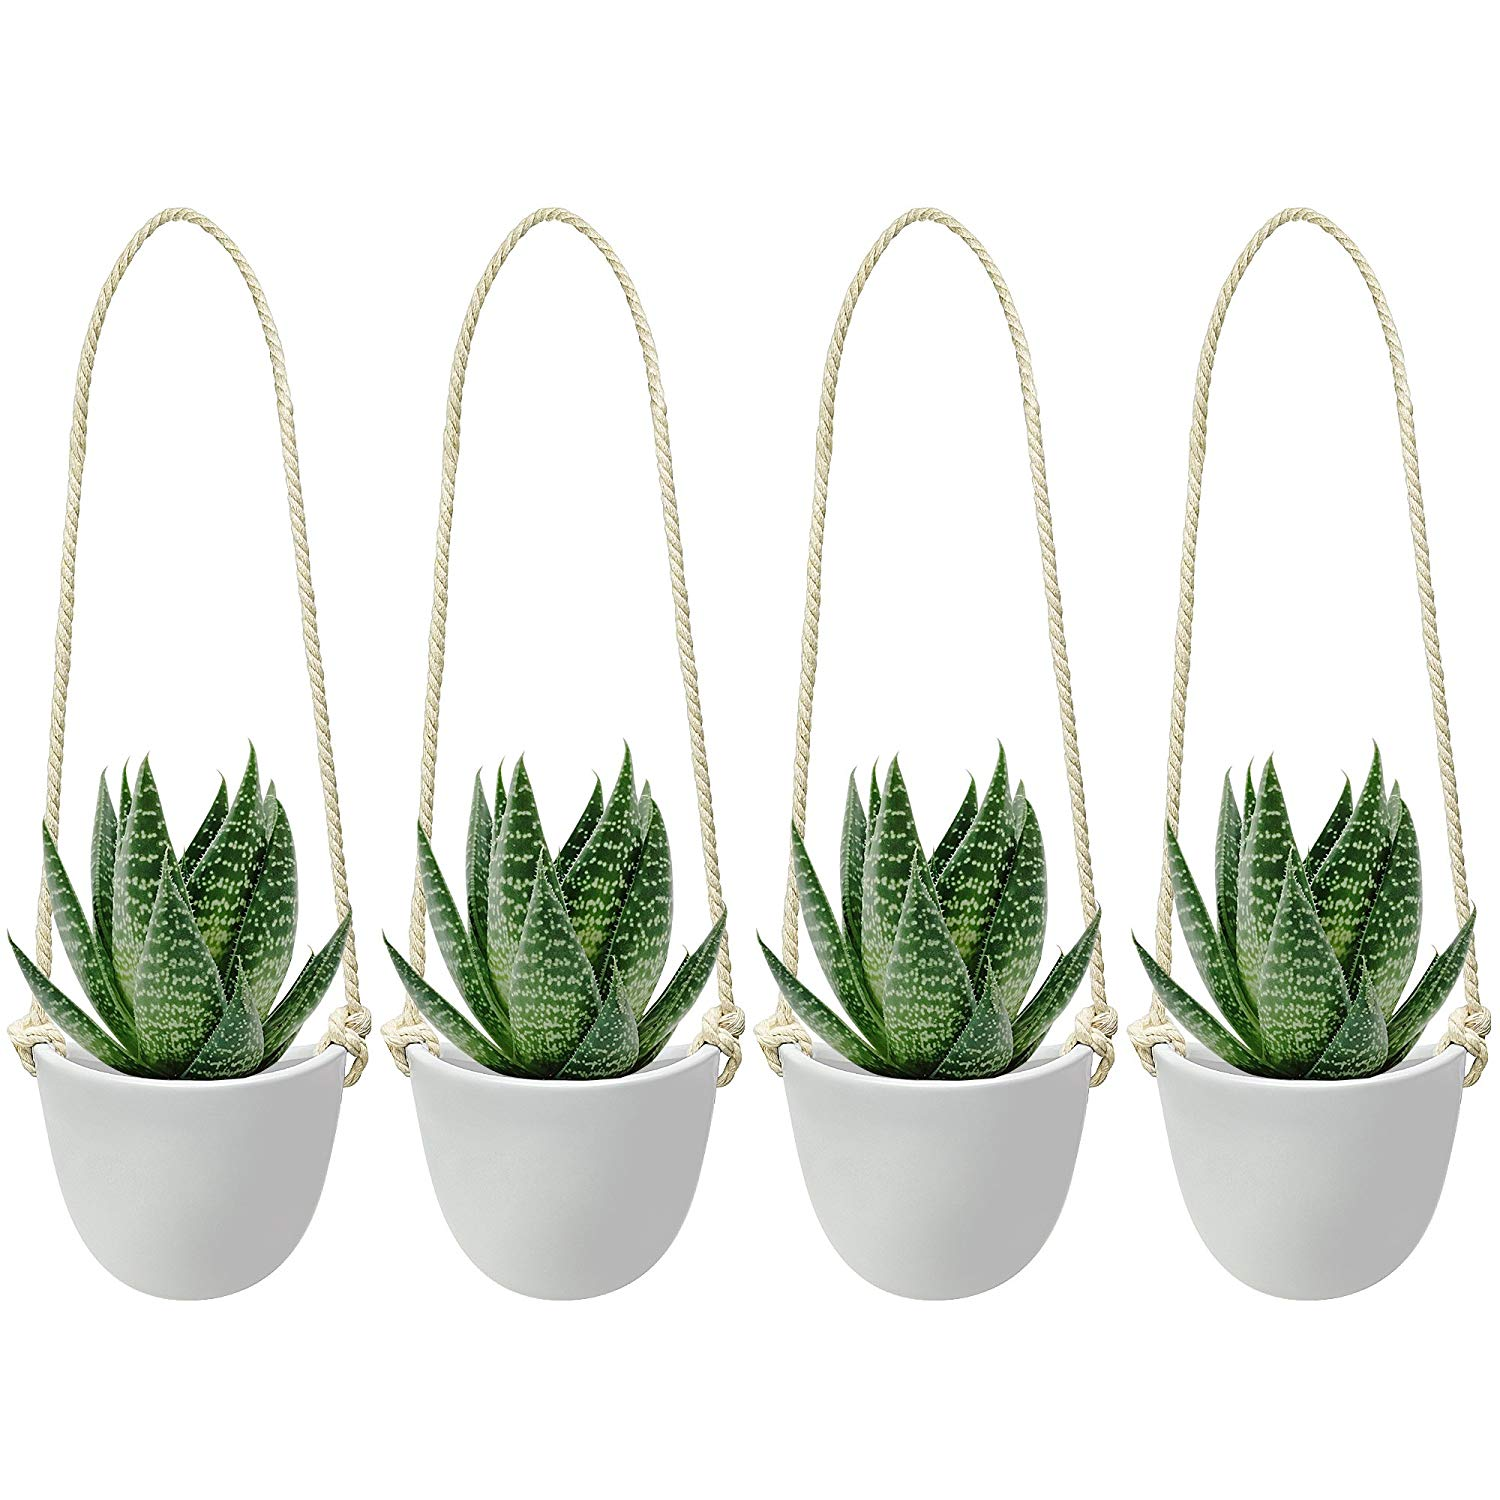 Nellam Ceramic Hanging Planters - Modern White Porcelain Containers - 4 pcs Decorative Pots for Indoor & Outdoor Use - Wall Decor Vase for Garden Flowers, Herbs, Plants and Succulents